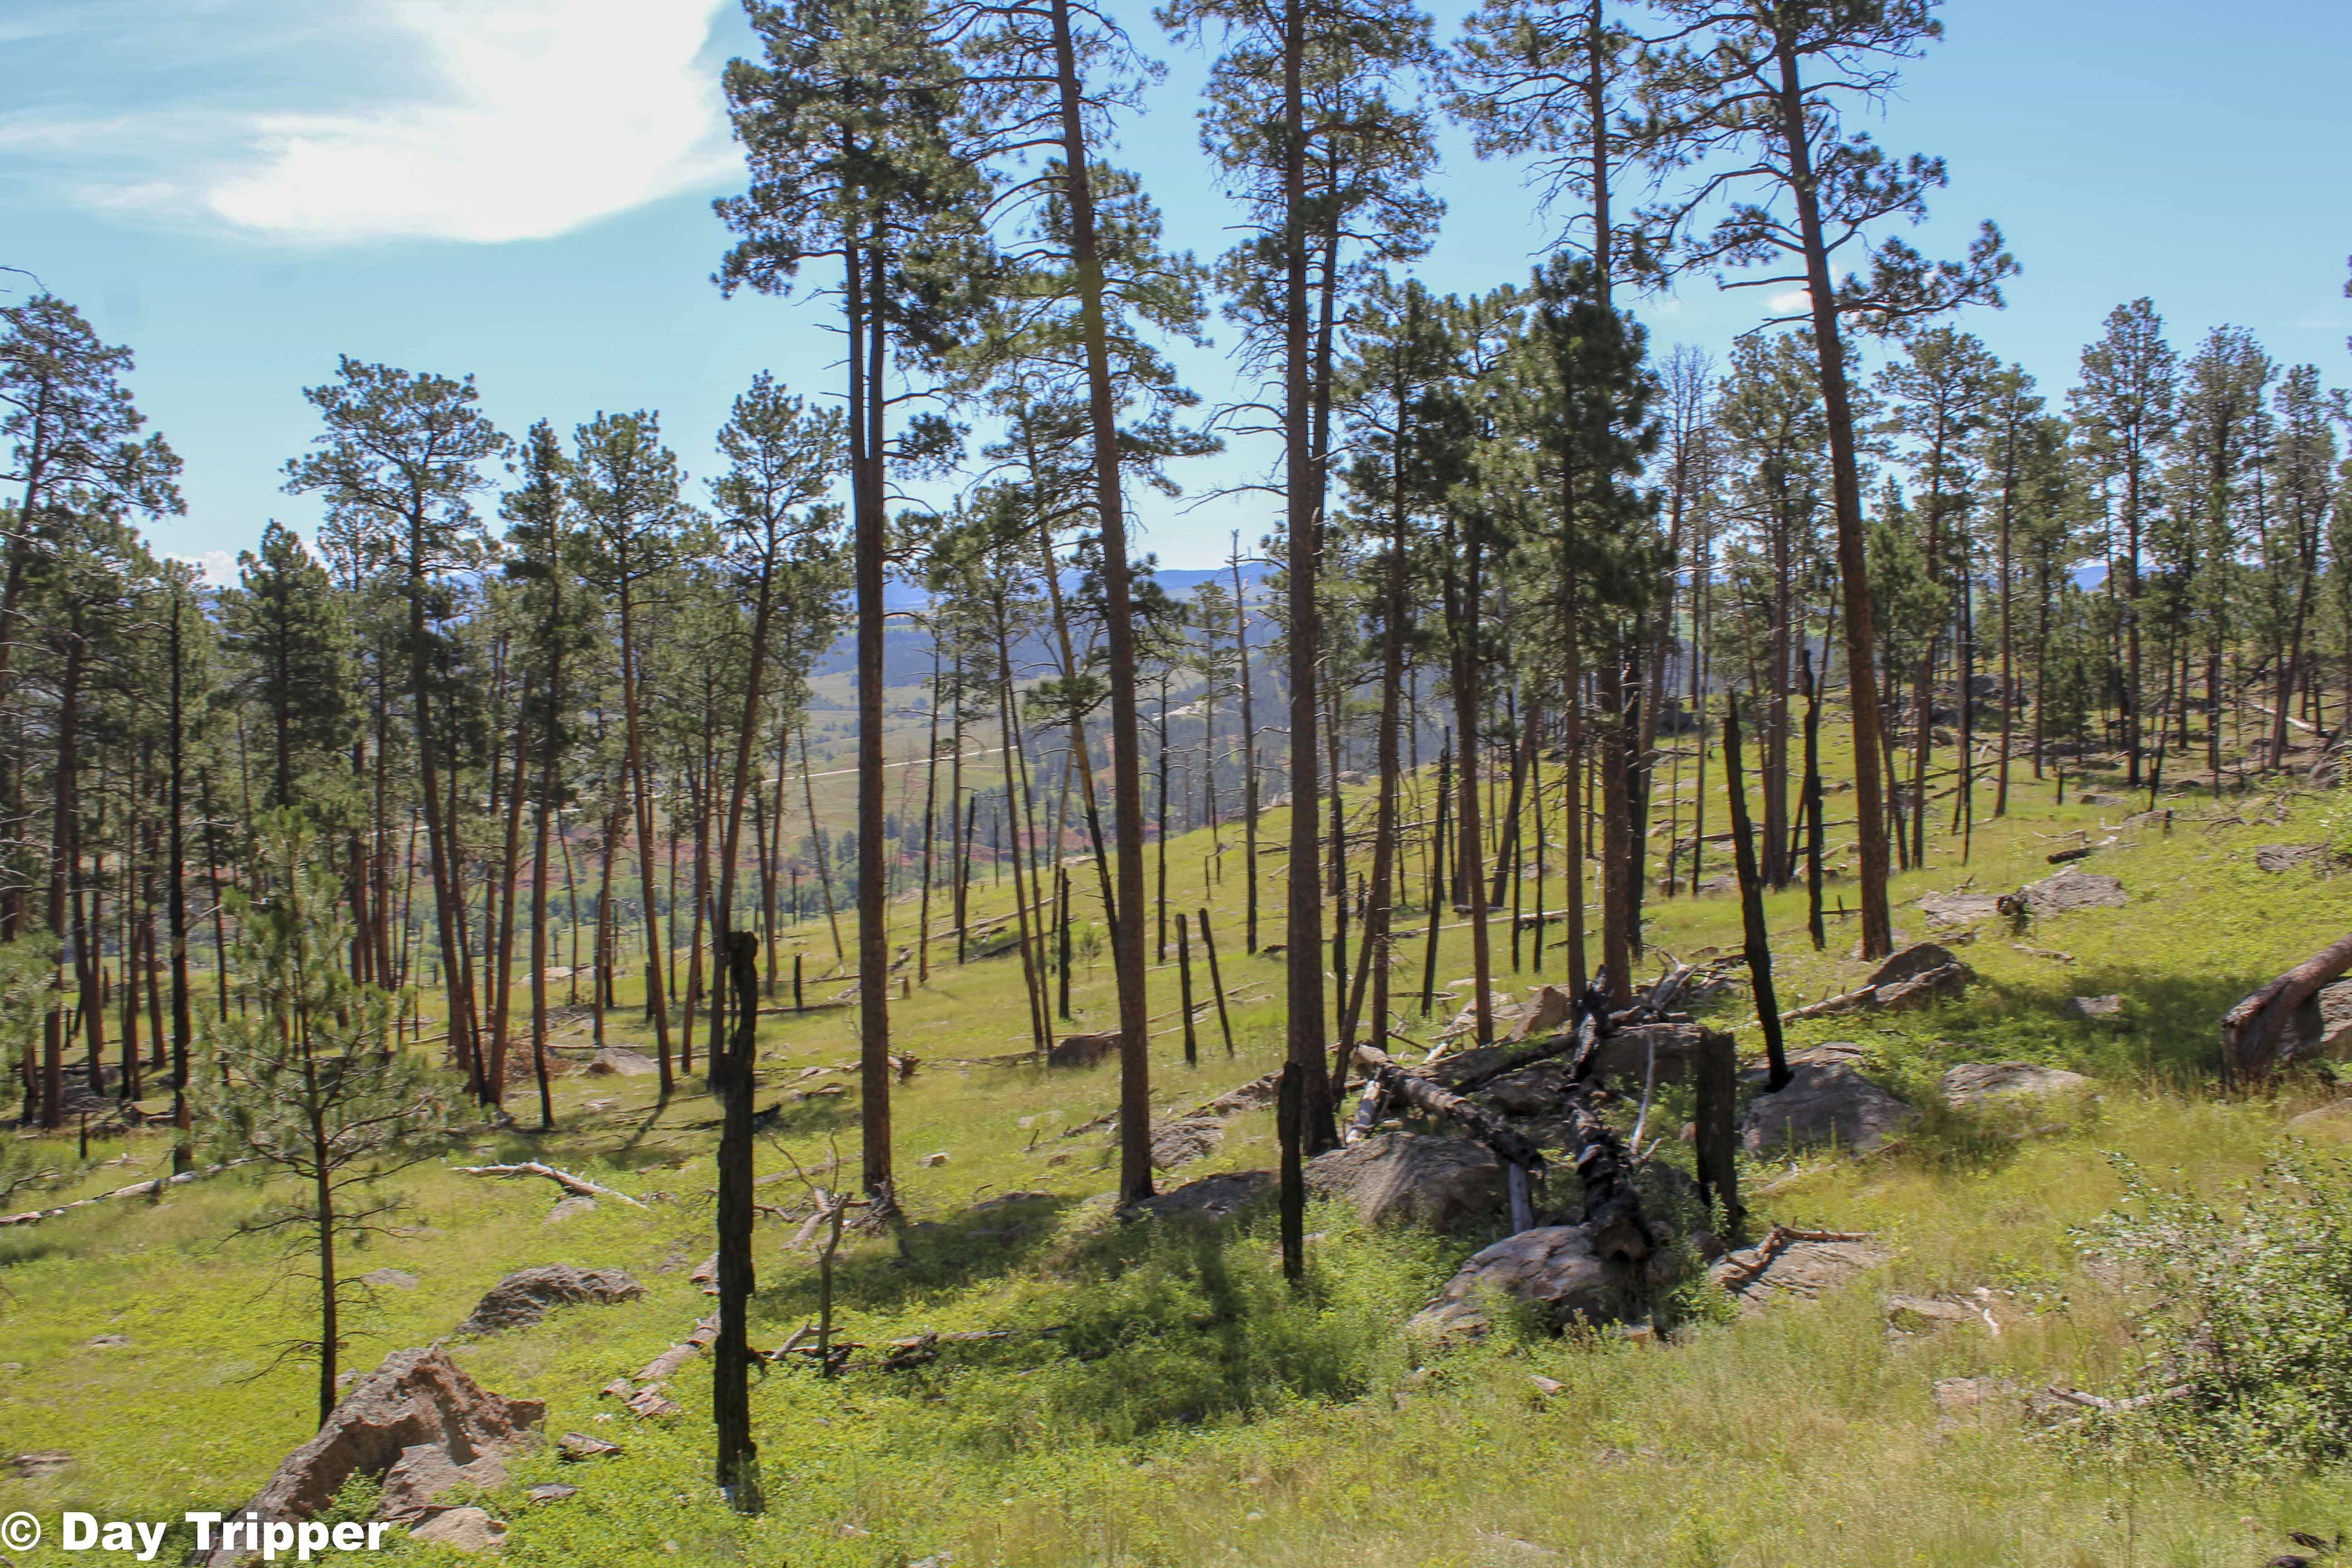 The Forrest at Devils Tower